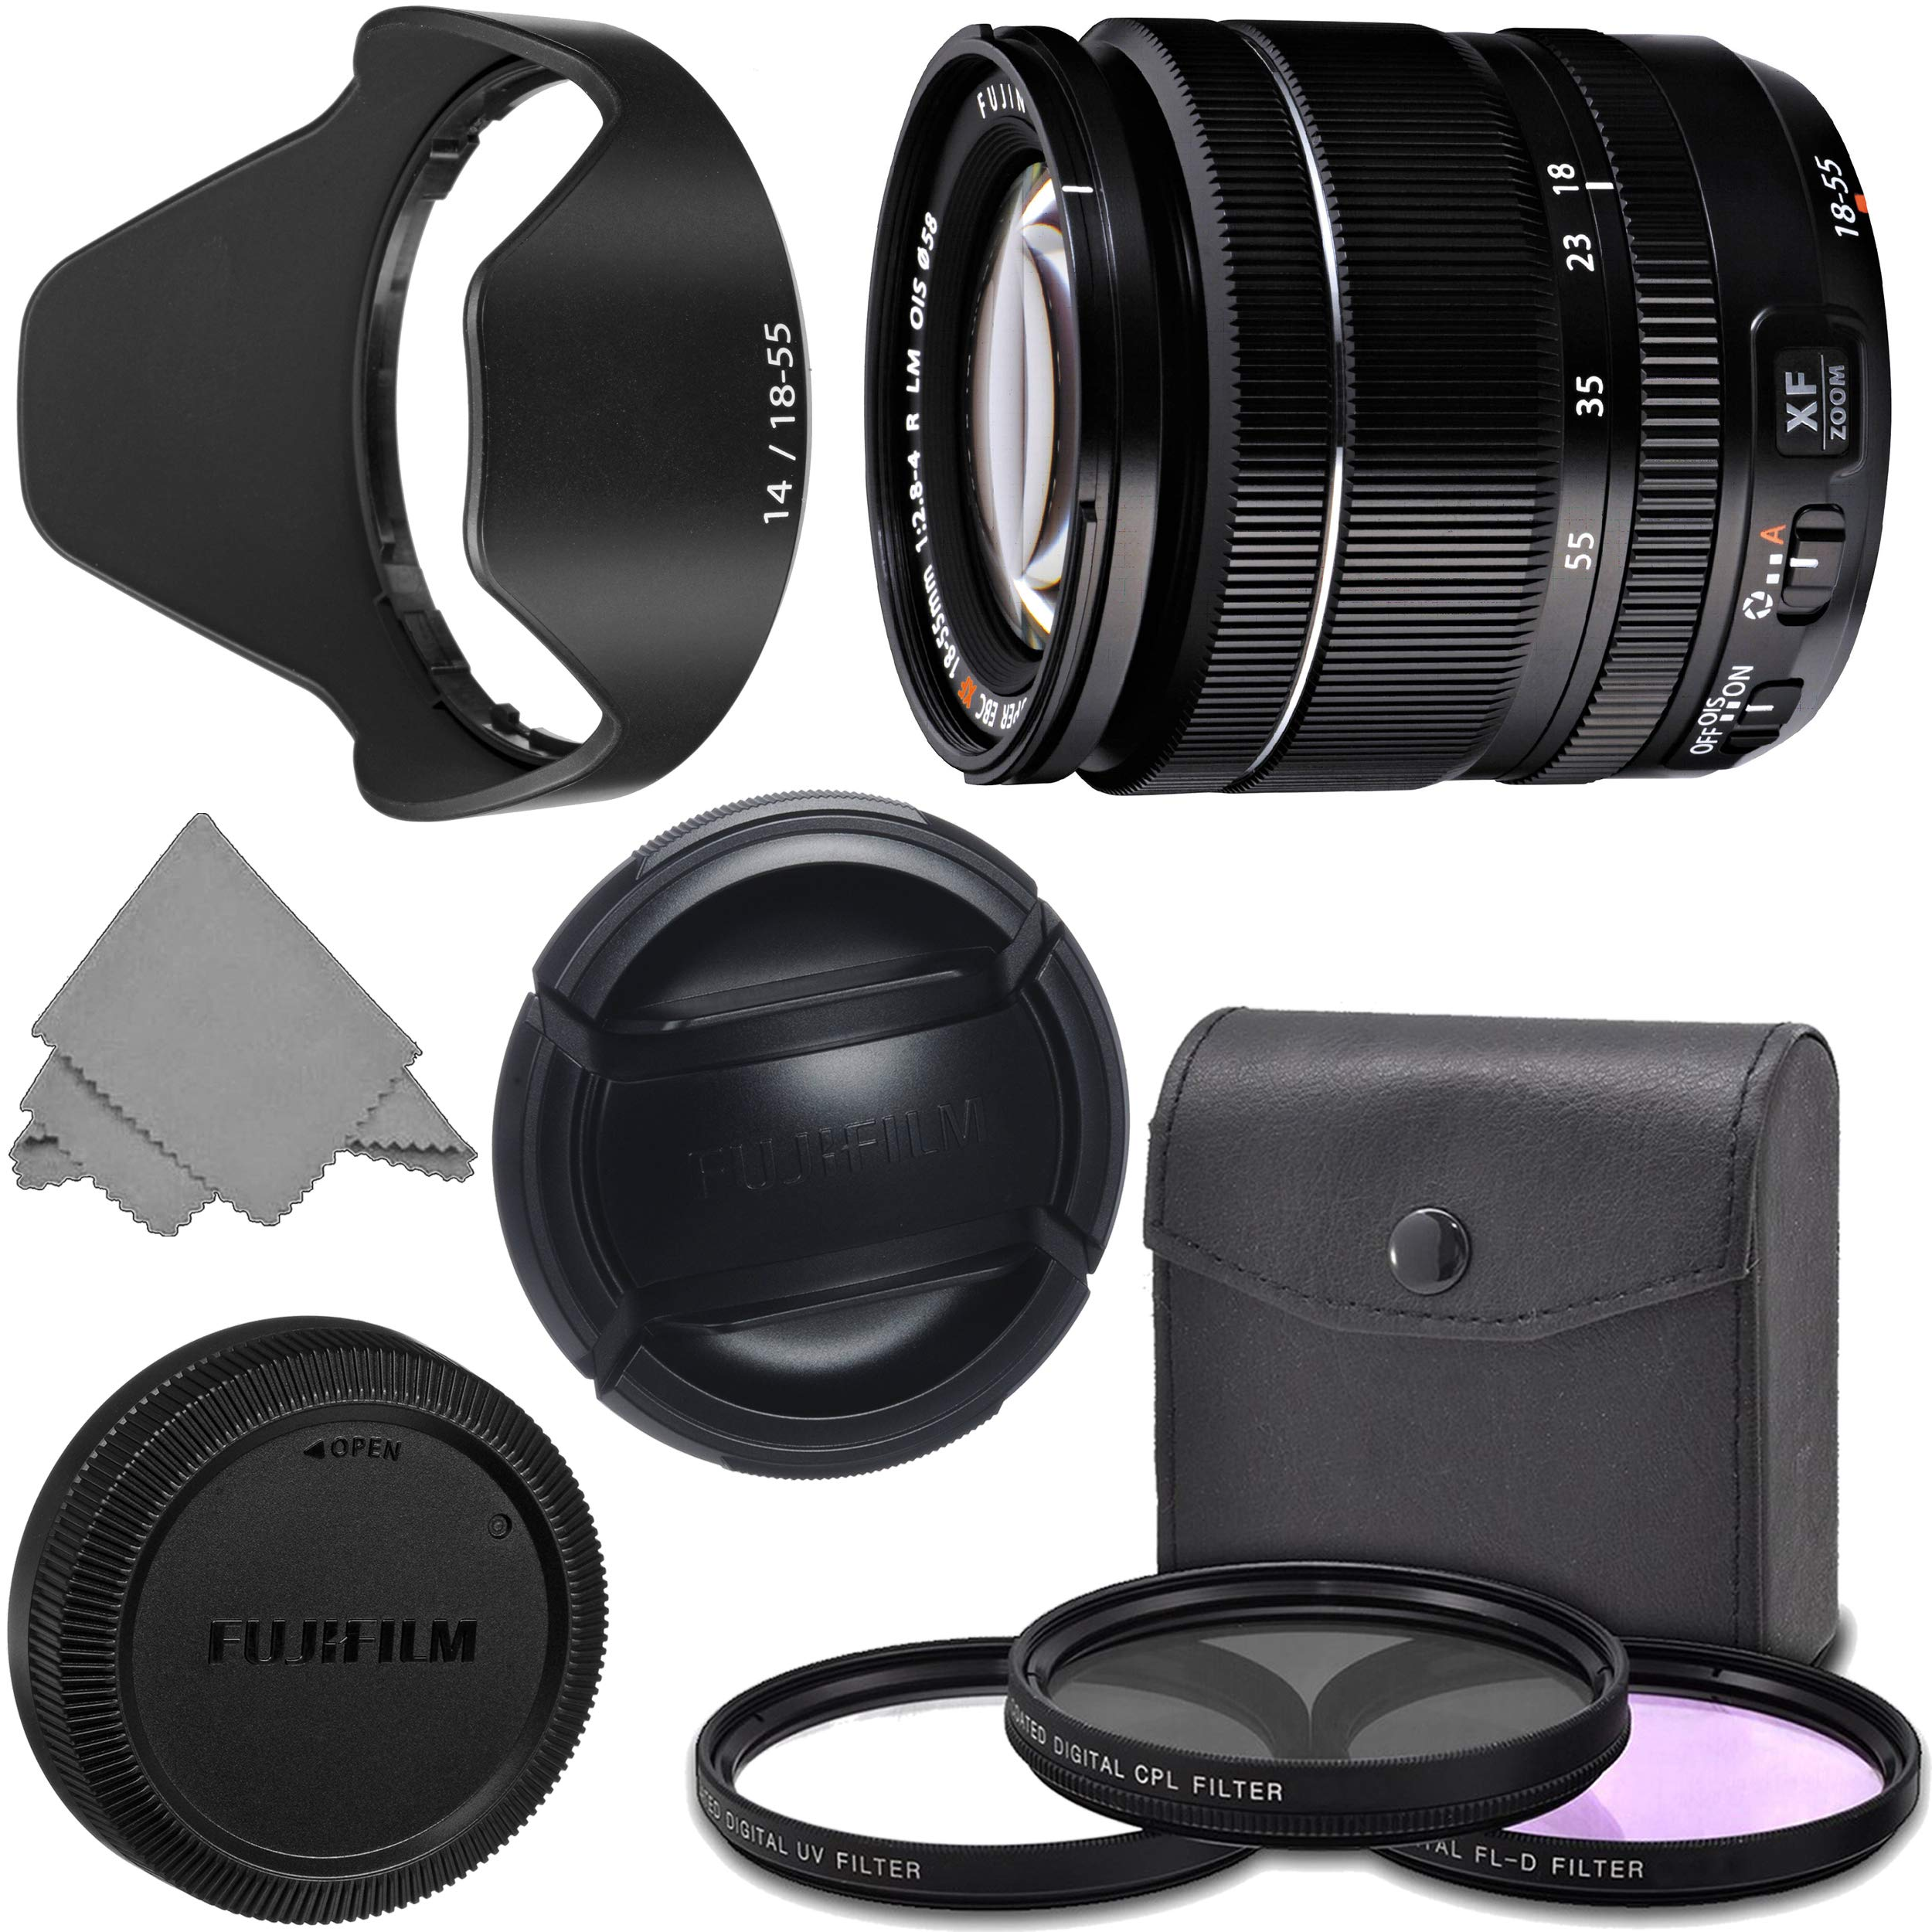 FUJIFILM XF 18-55mm f/2.8-4 R LM OIS Wide Angle Lens (16276479) + AOM Pro Kit Combo Bundle - Fuji 18-55mm X-Mount Zoom Kit Lens - International Version by AOM